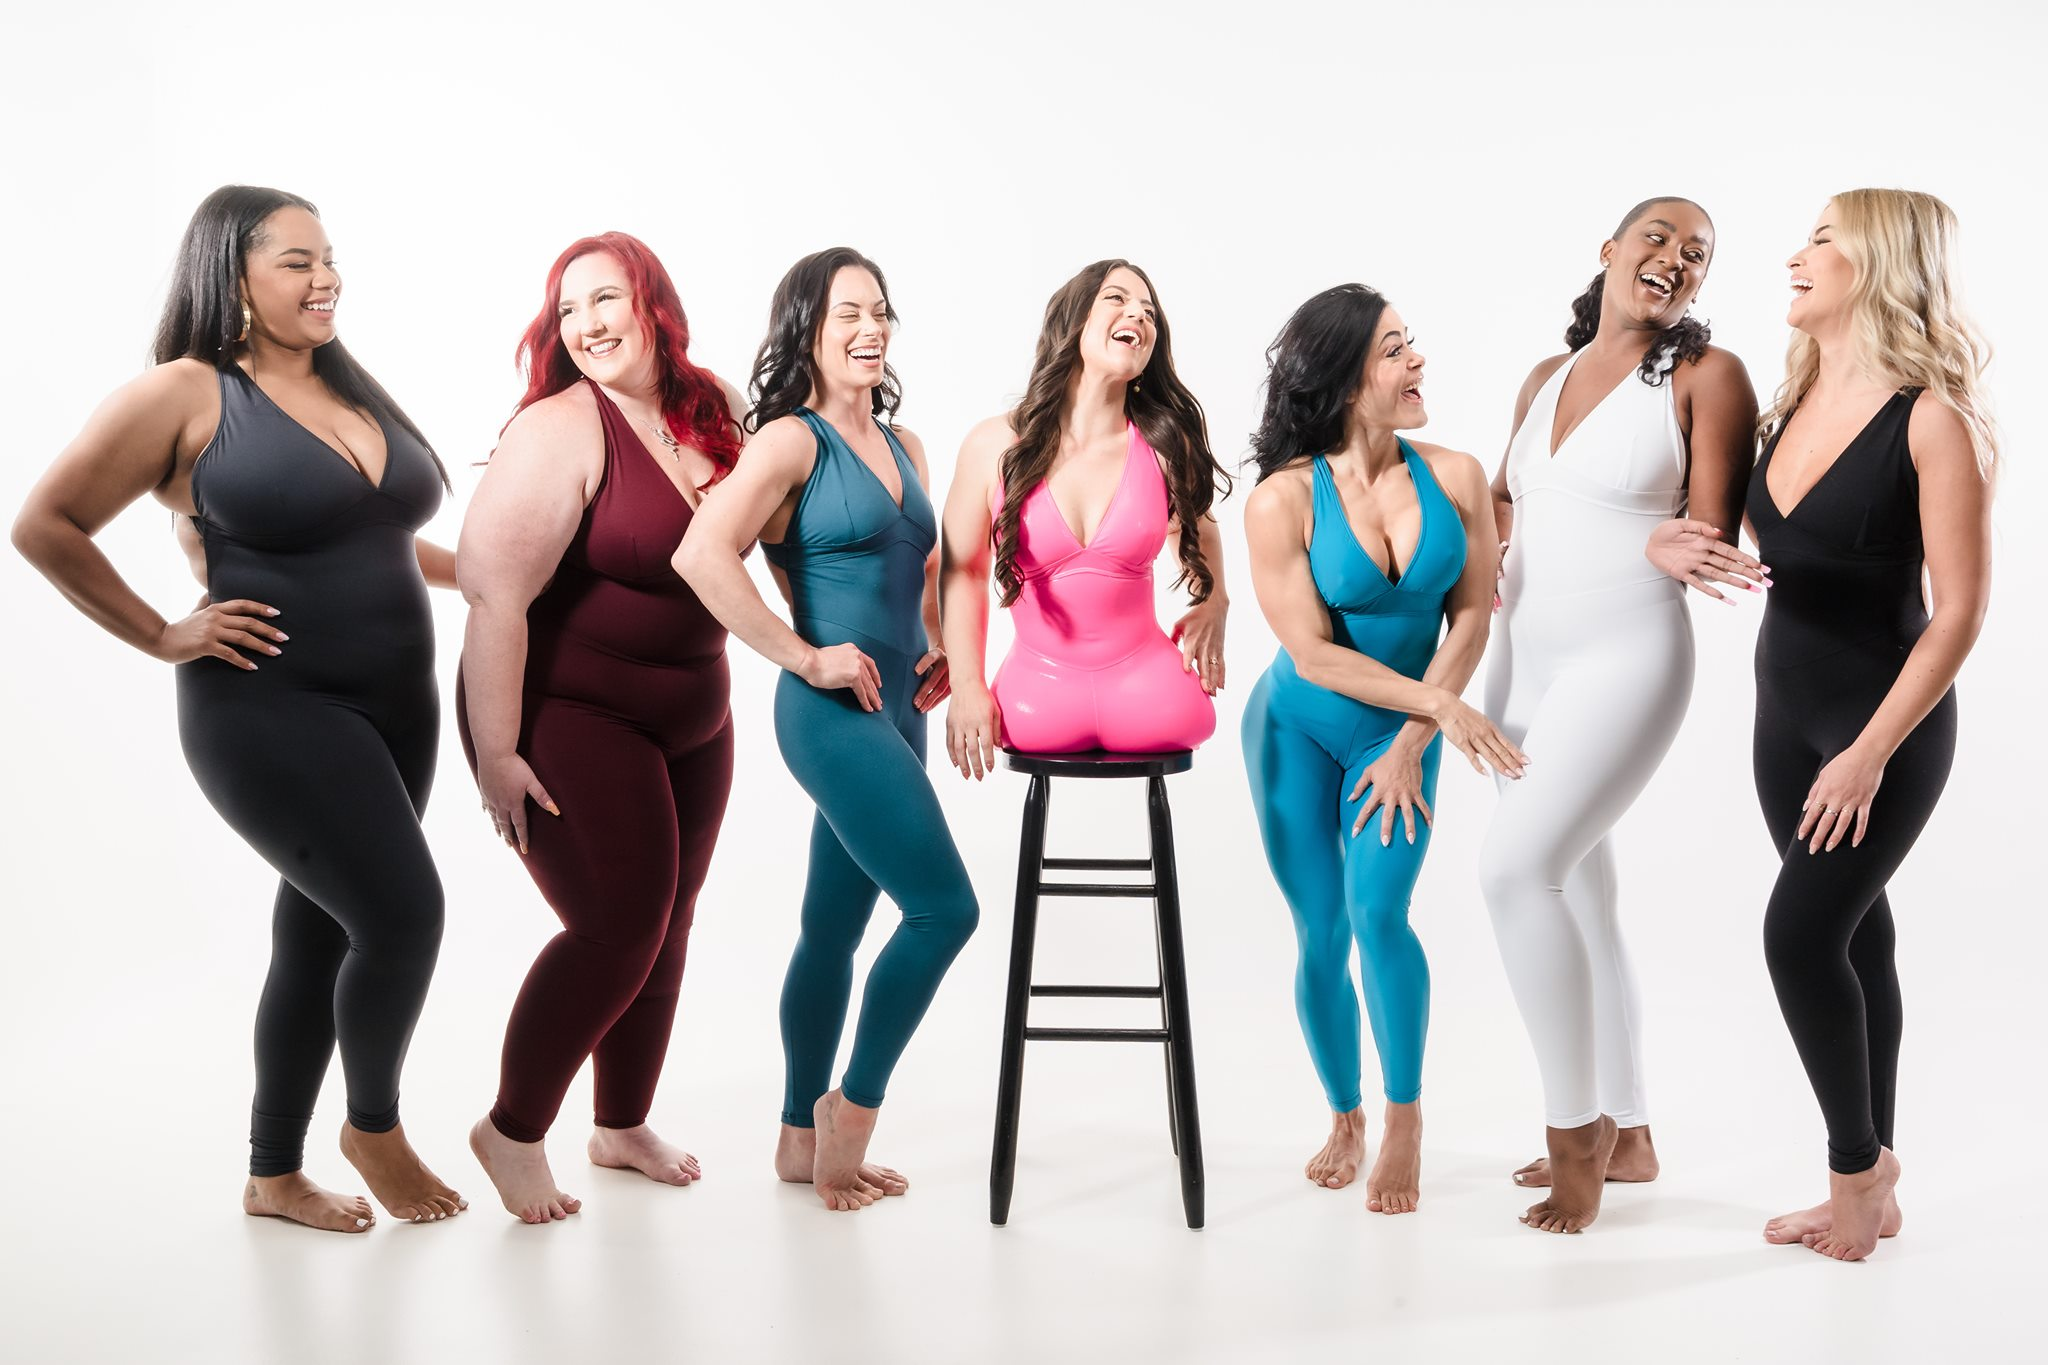 OnTheMarqJumpsuit.com – Fashion and Jumpsuits